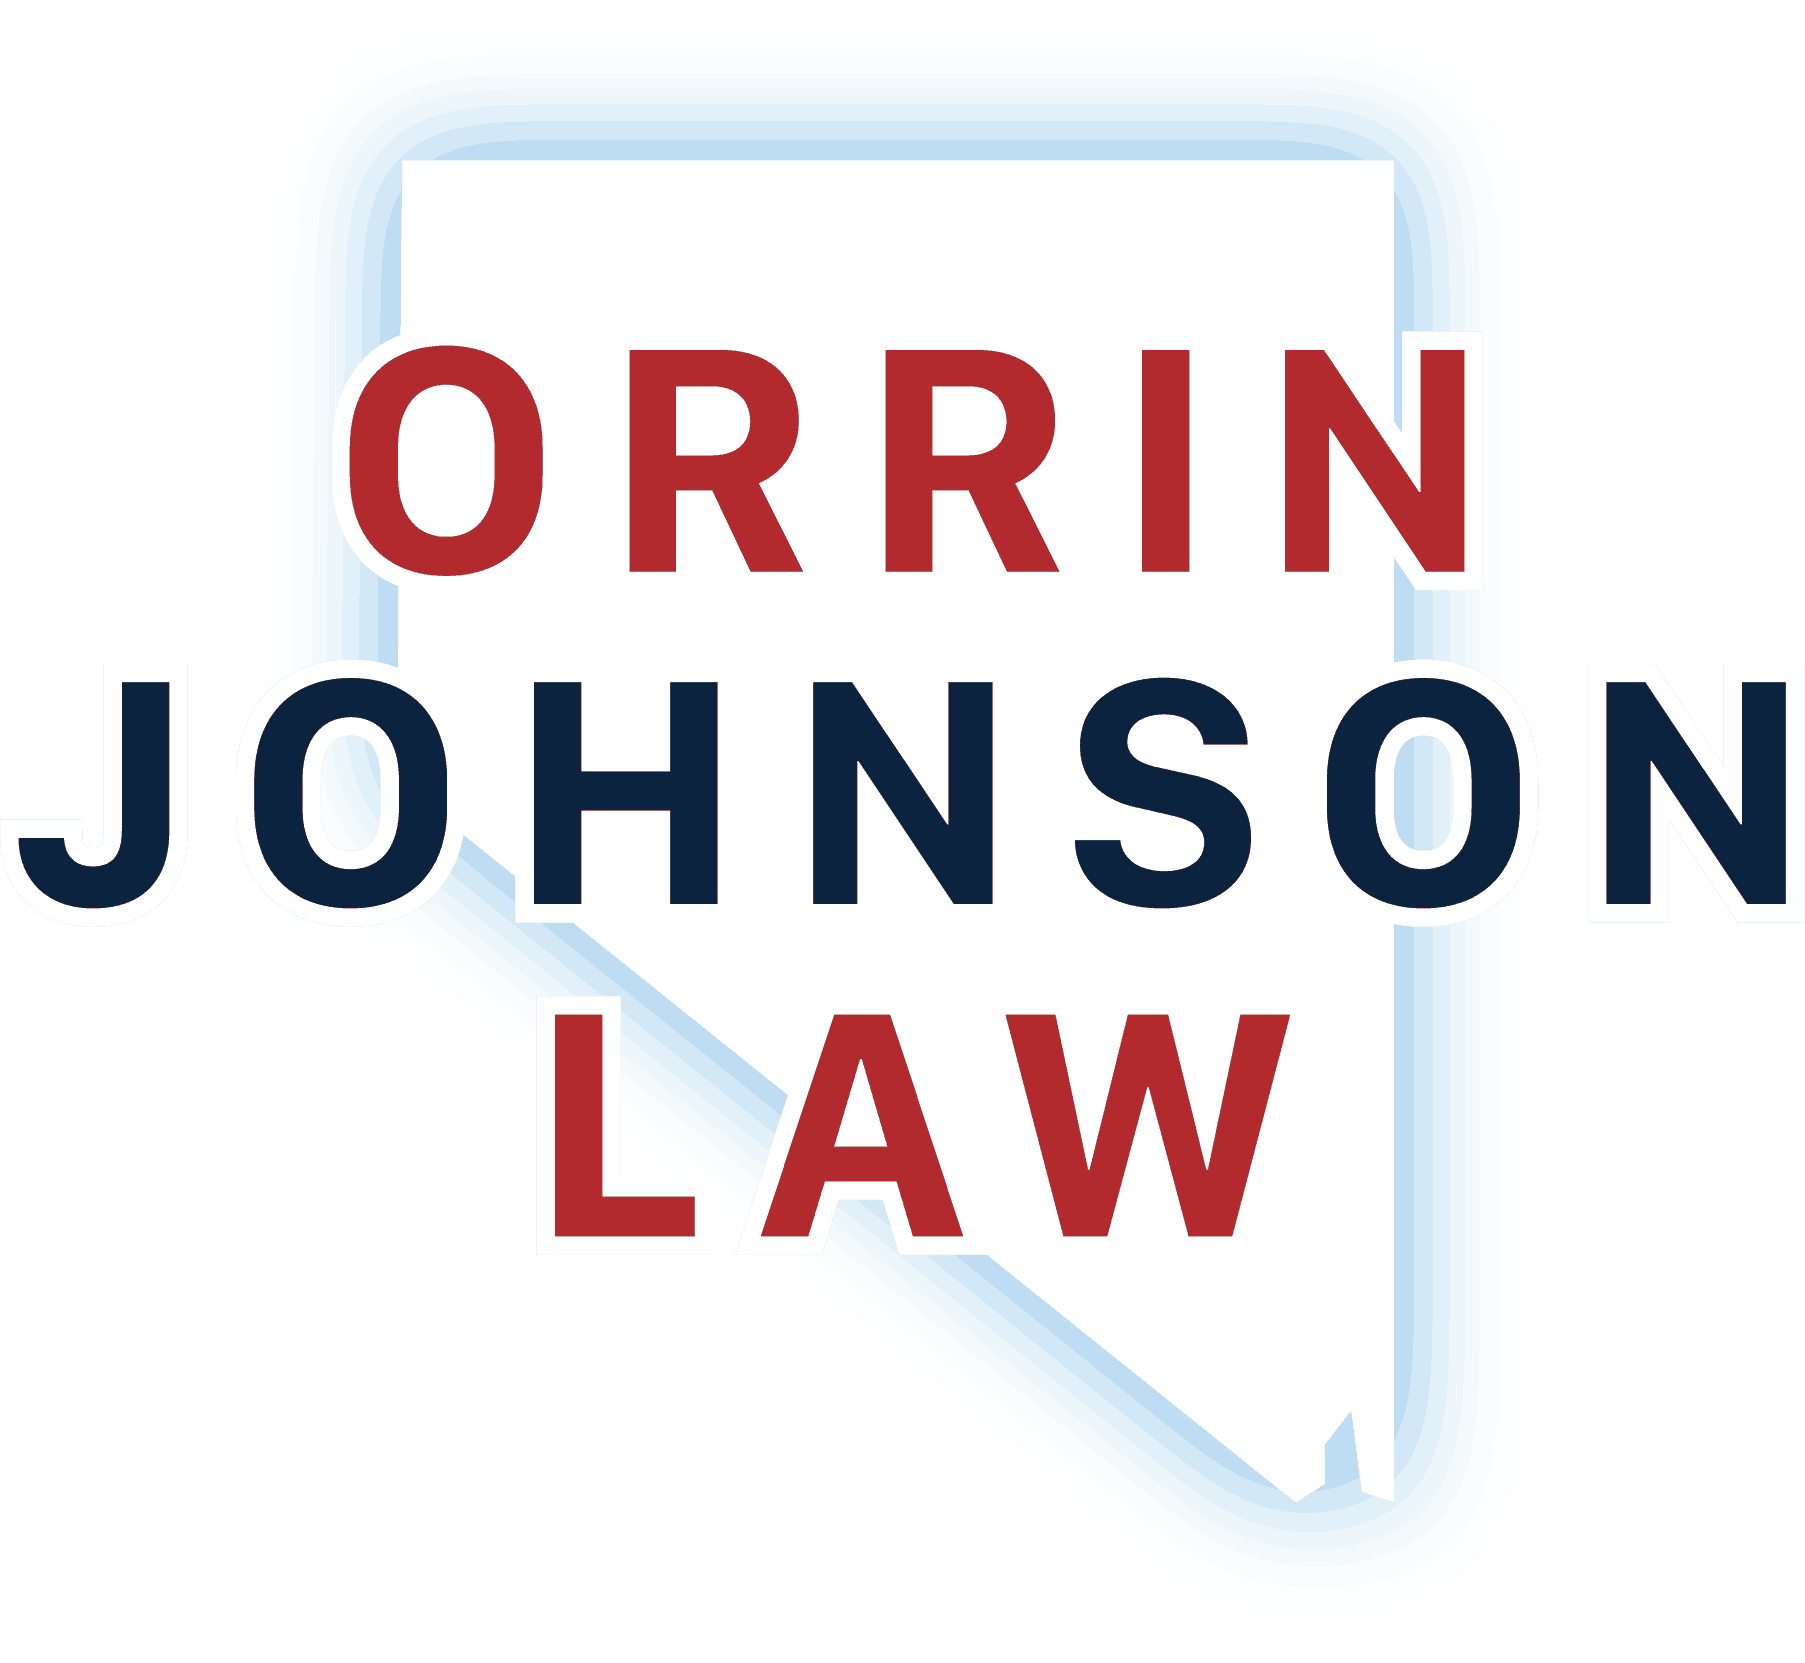 Orrin Johnson Law